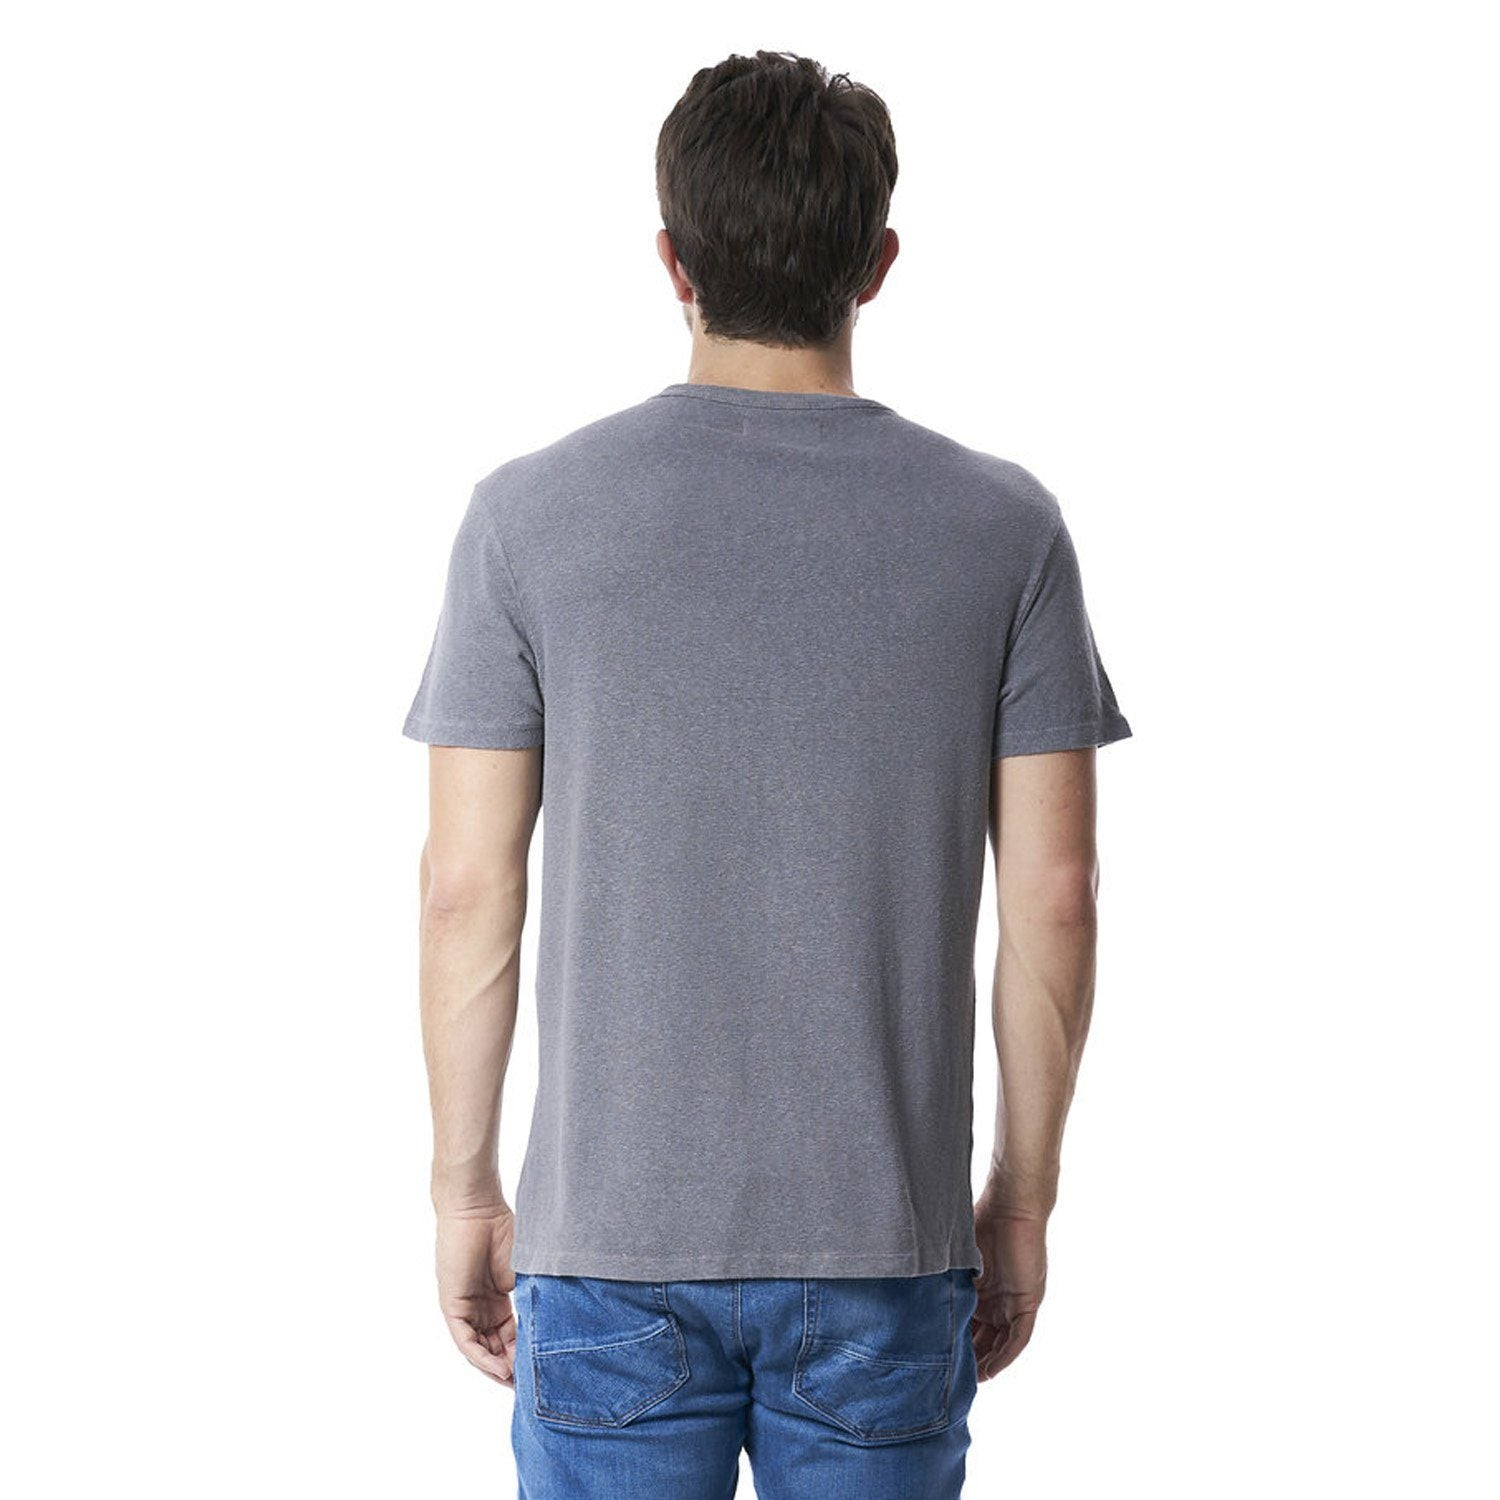 Steve T-Shirt in Grey - Mitchell Evan